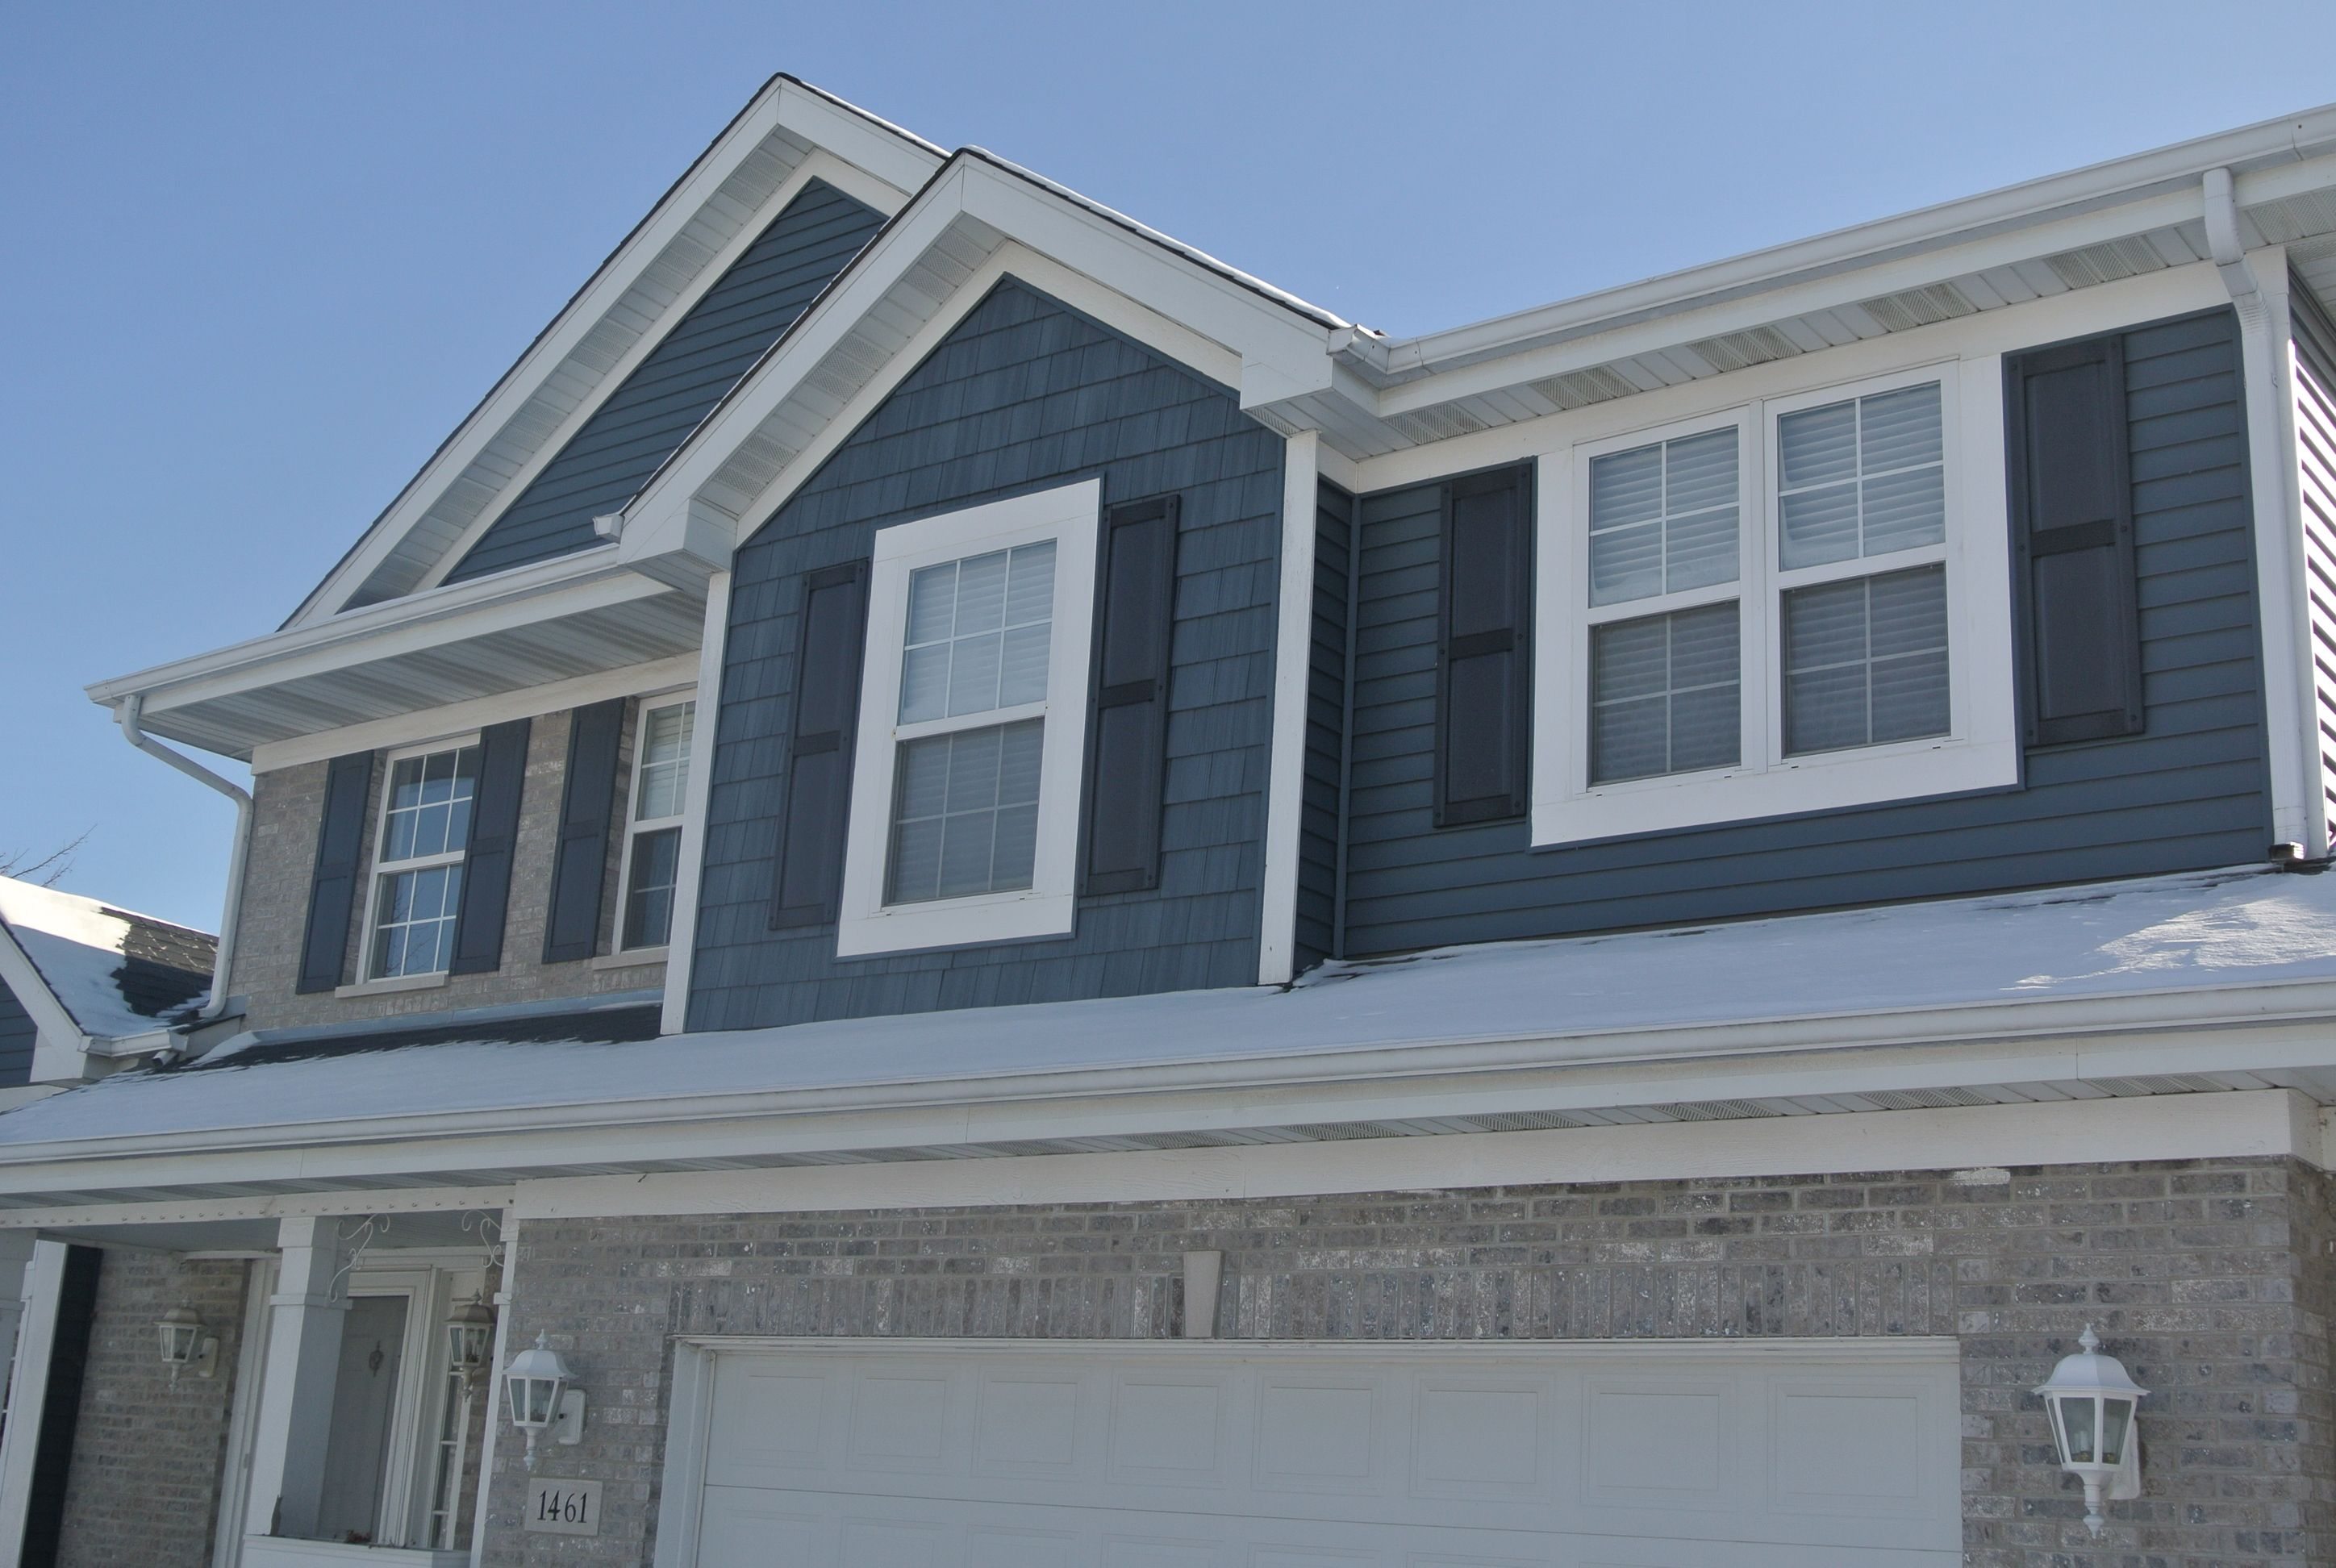 Pacific Blue Vinyl Siding By Certainteed This Photo Shows